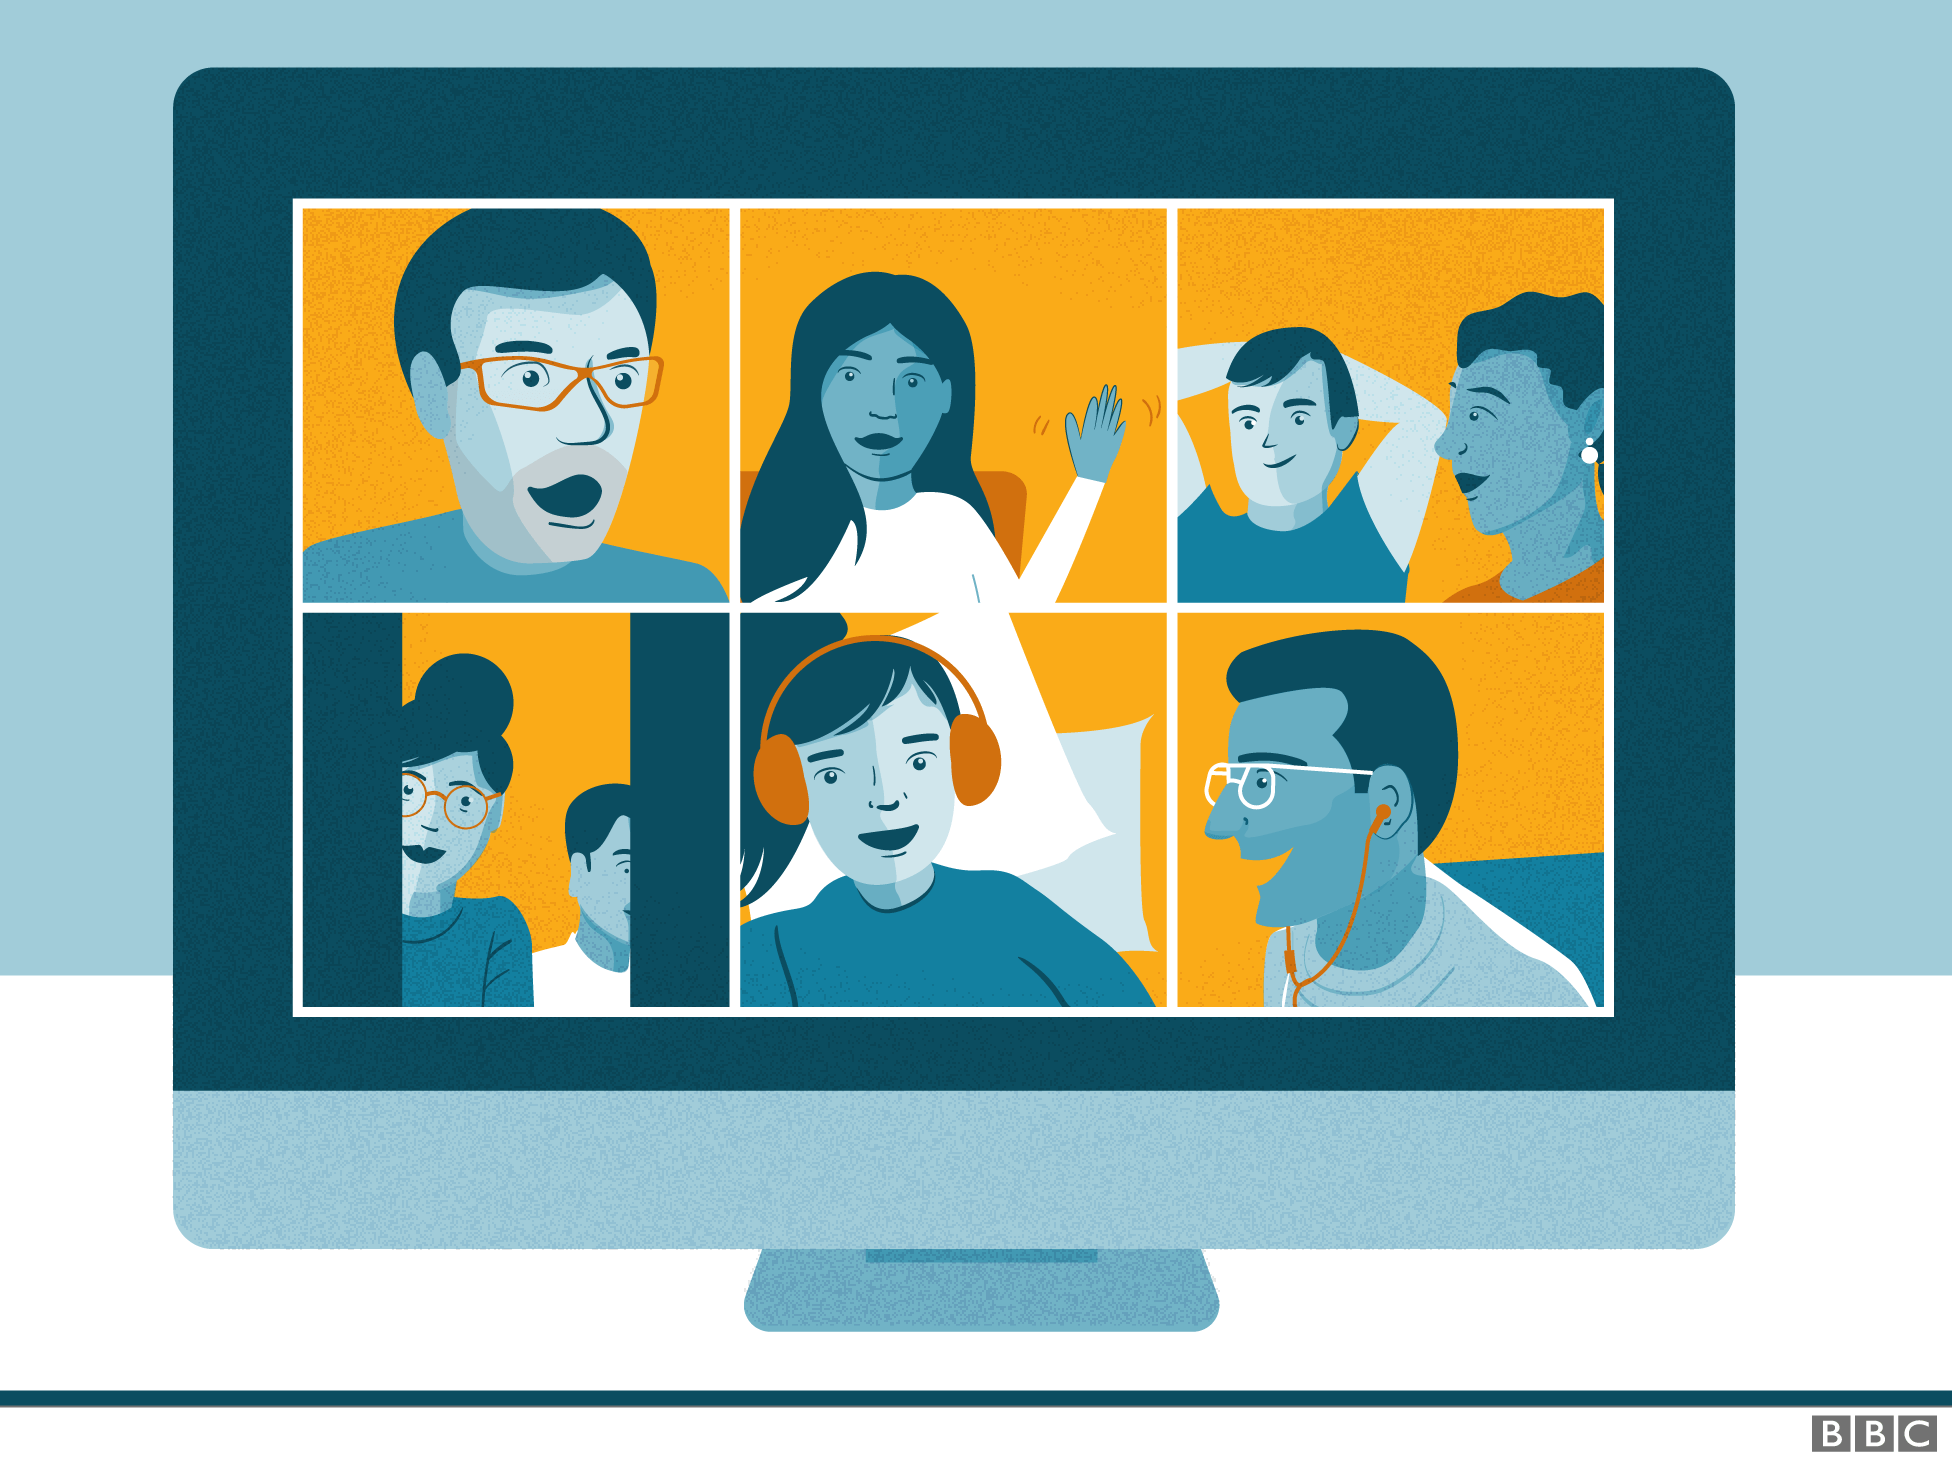 Illustration of an online video call with multiple people